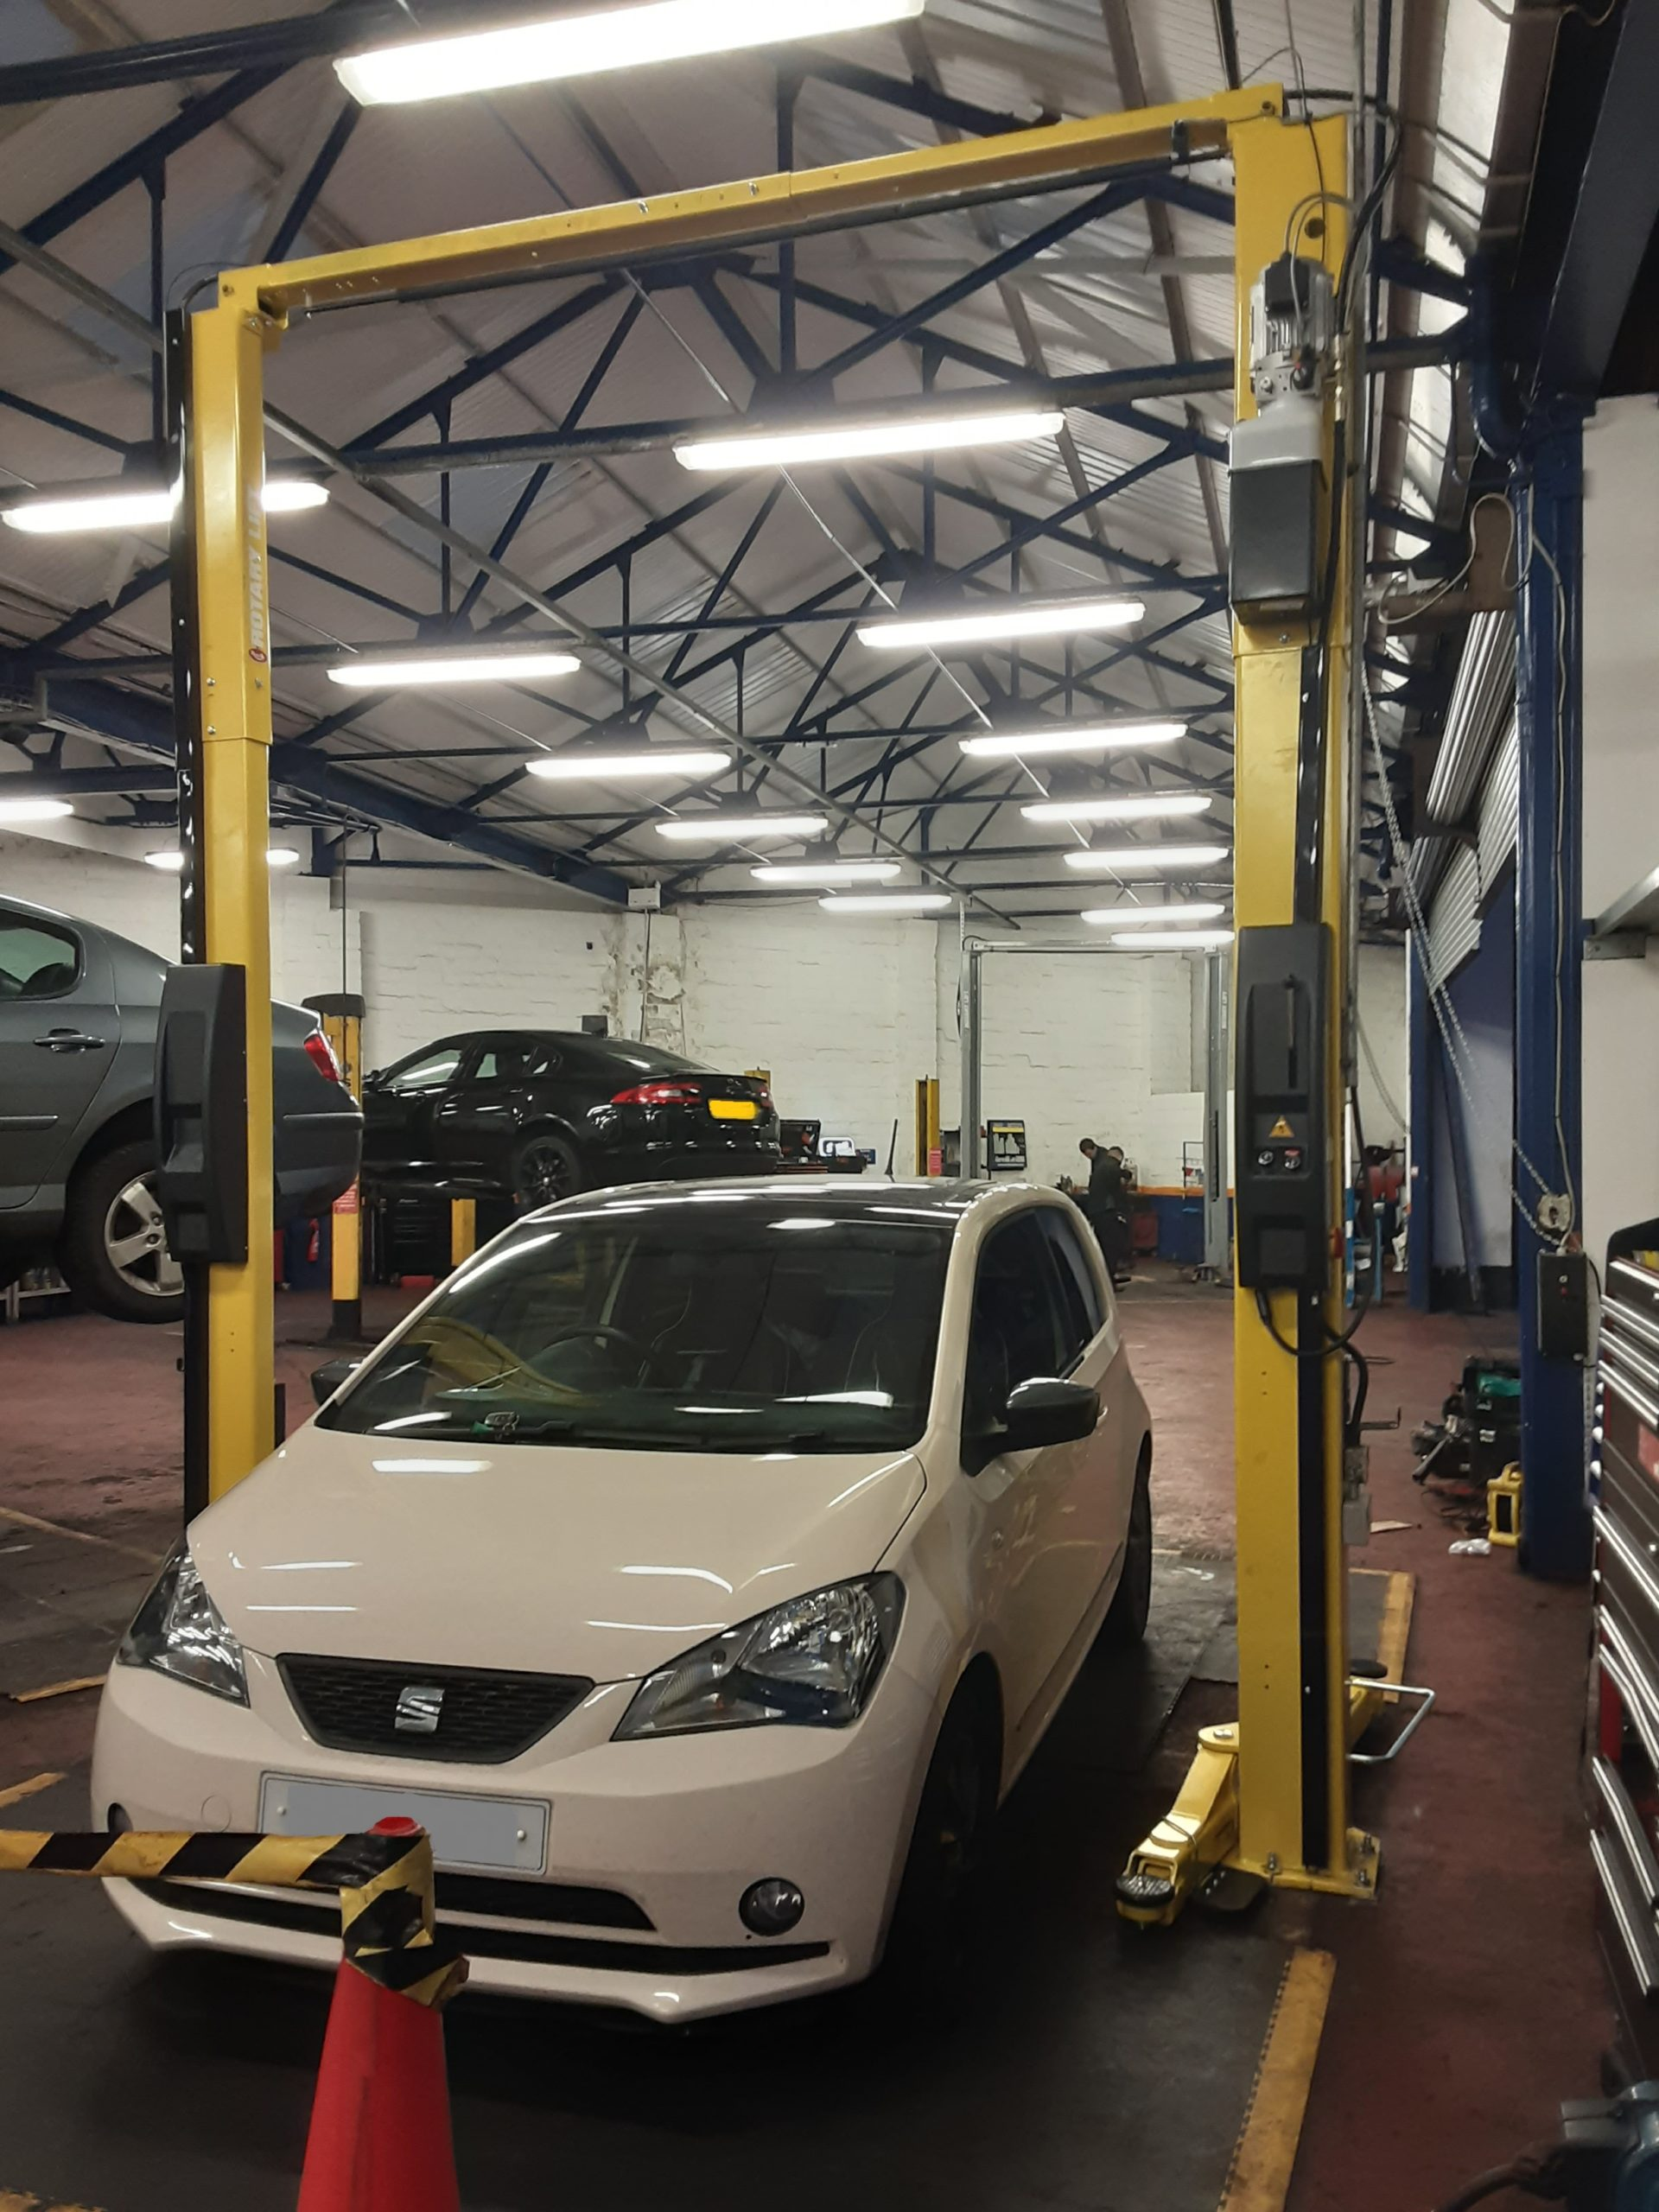 Our installation team removed an old two post lift and replaced with a brand new Rotary SP0A3T all in the same day at Kwik Fit Aberdeen.